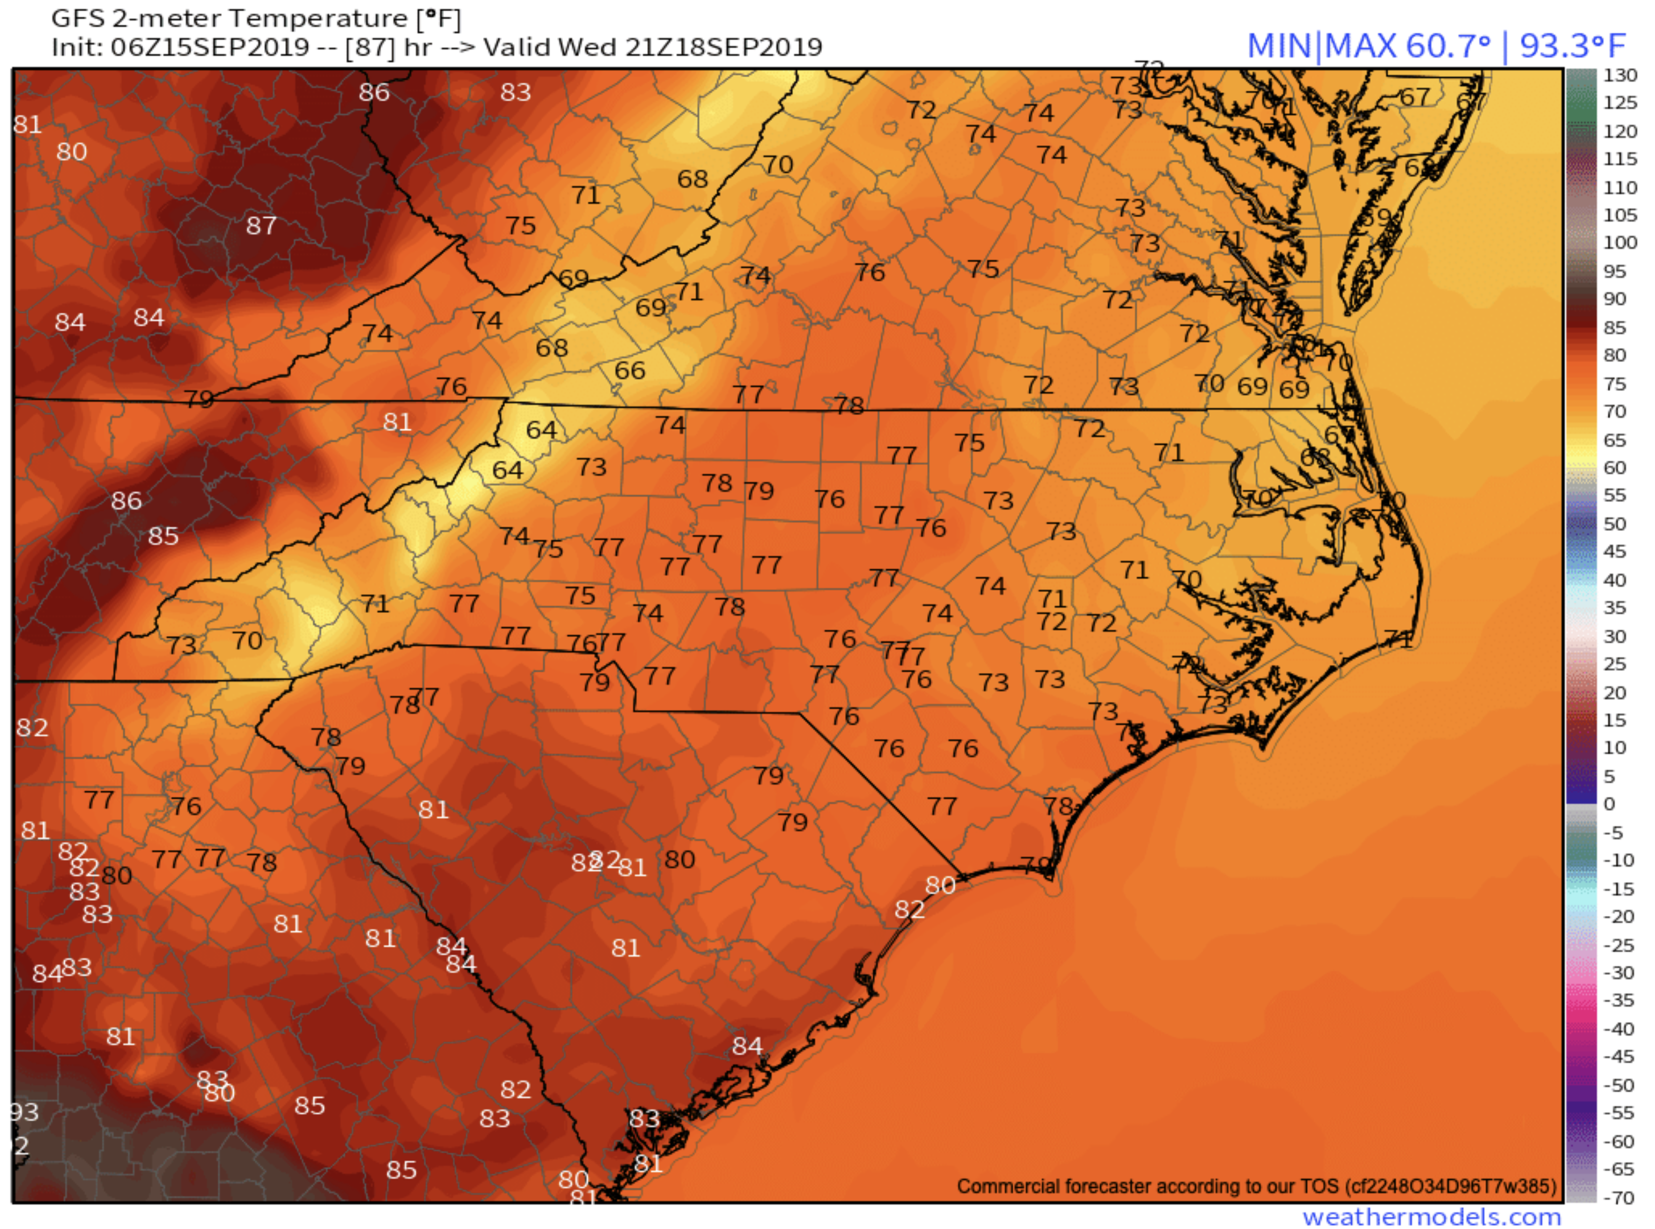 Wednesday Afternoon Temperatures Per GFS Provided By  Weathermodels.com